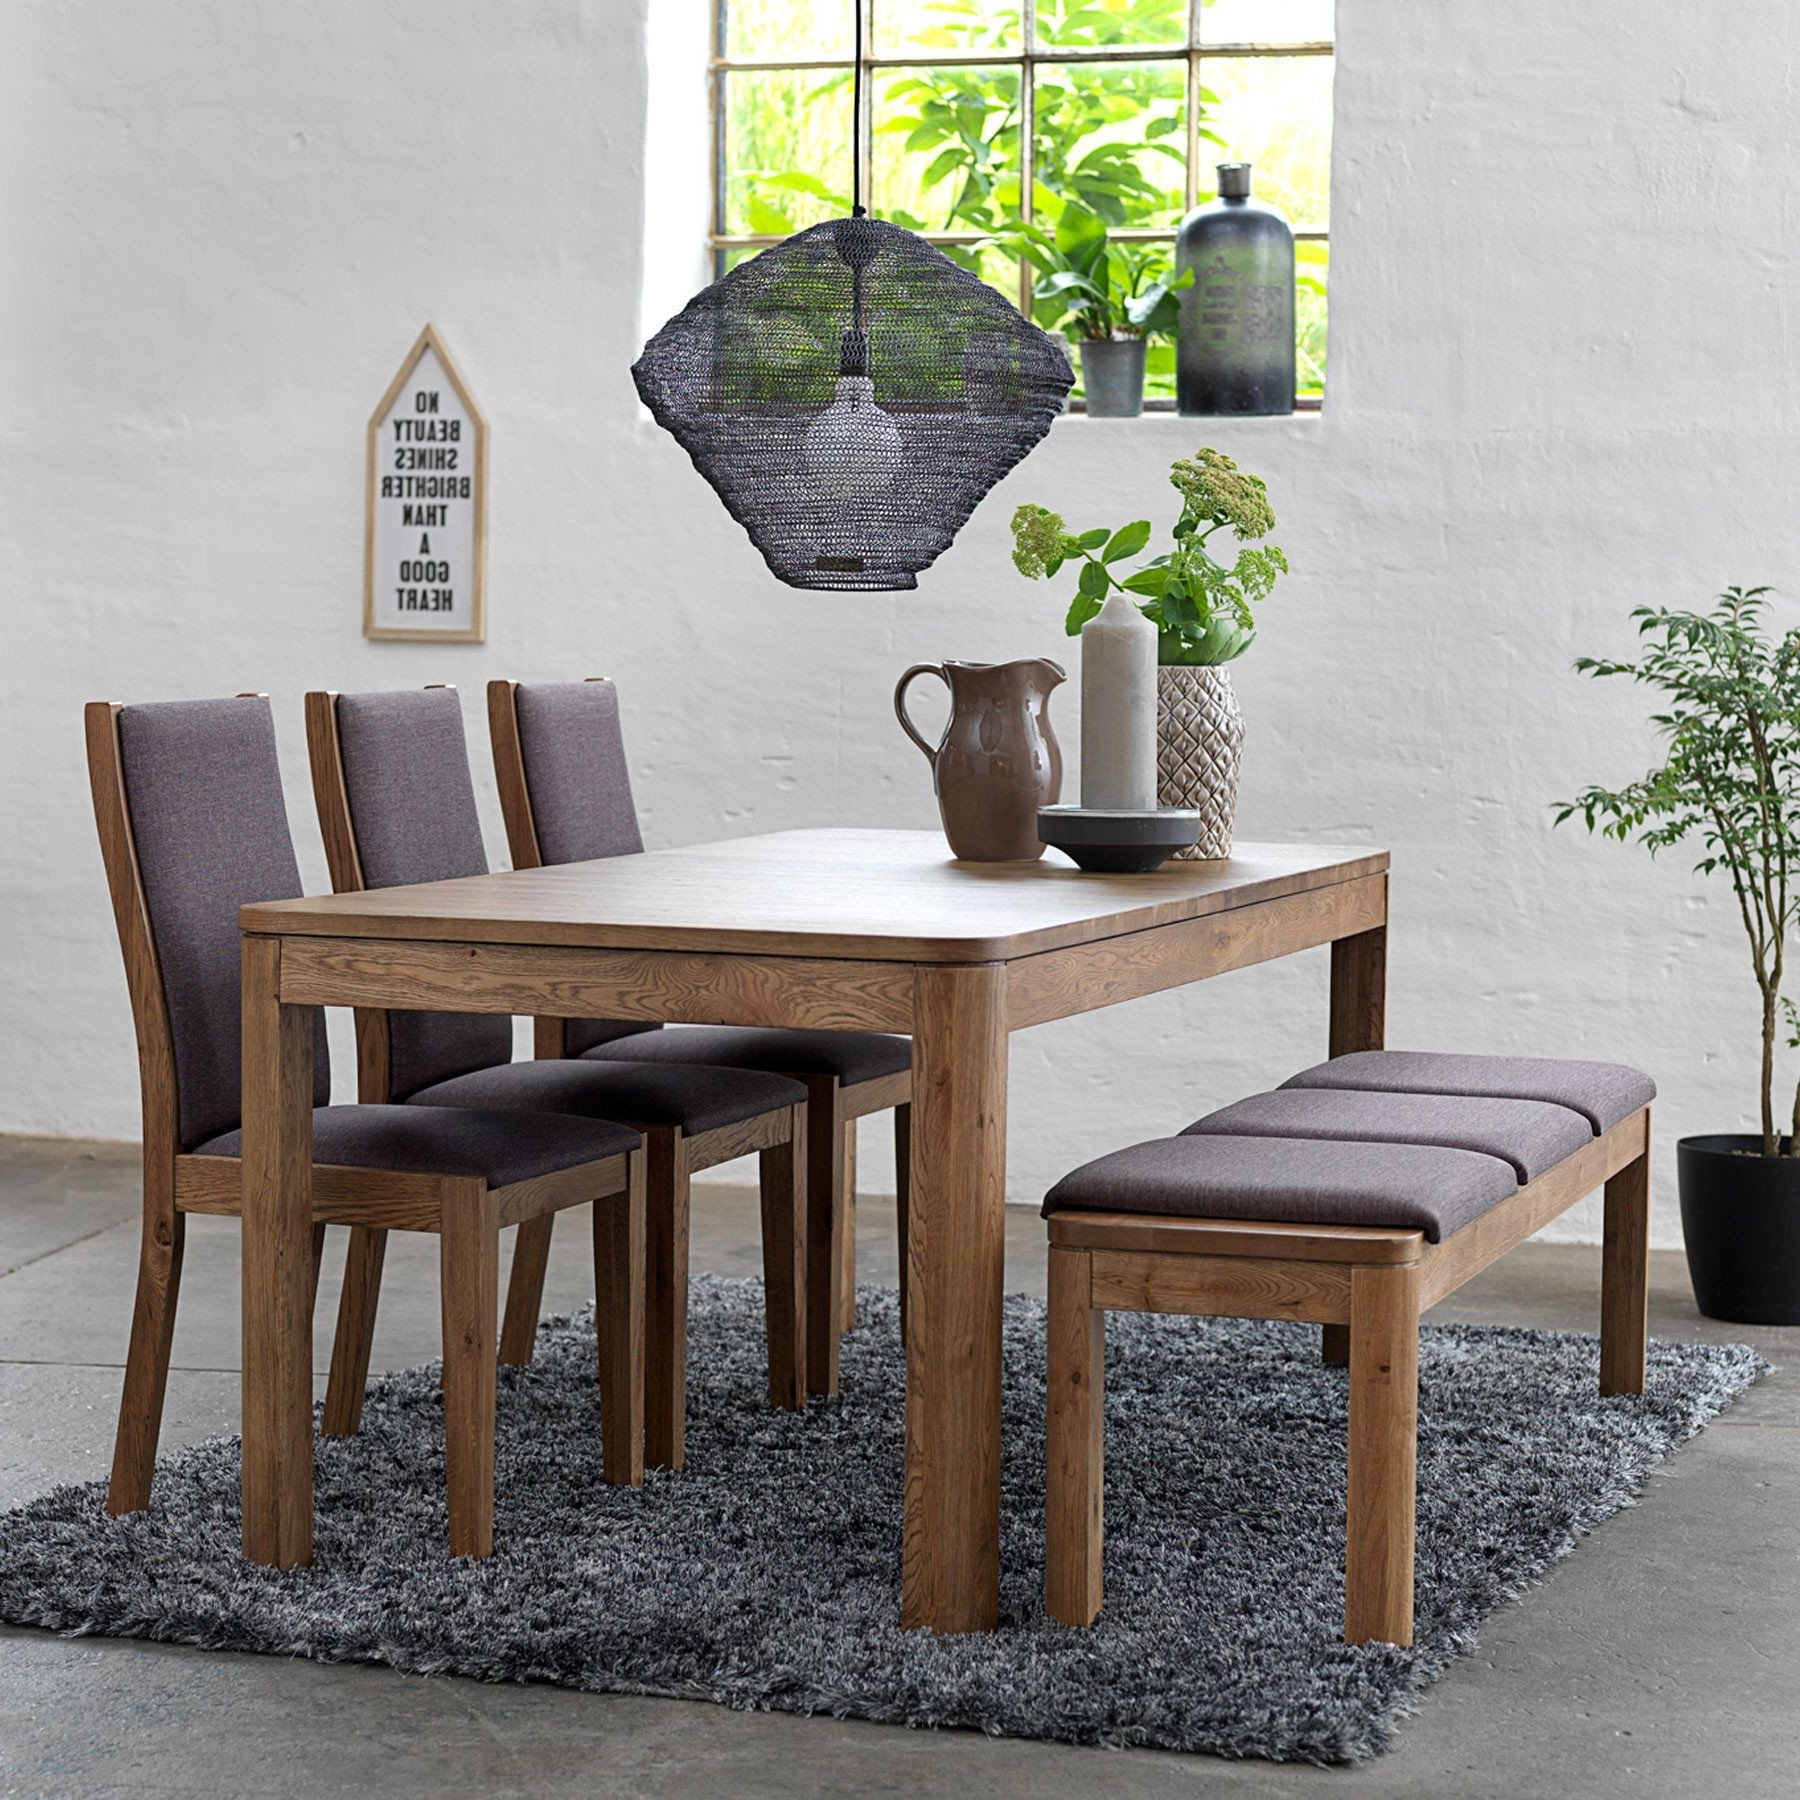 50+ Dining Table With Bench You'll Love In 2020 – Visual Hunt Inside Recent 8 Seater Wood Contemporary Dining Tables With Extension Leaf (Gallery 27 of 30)